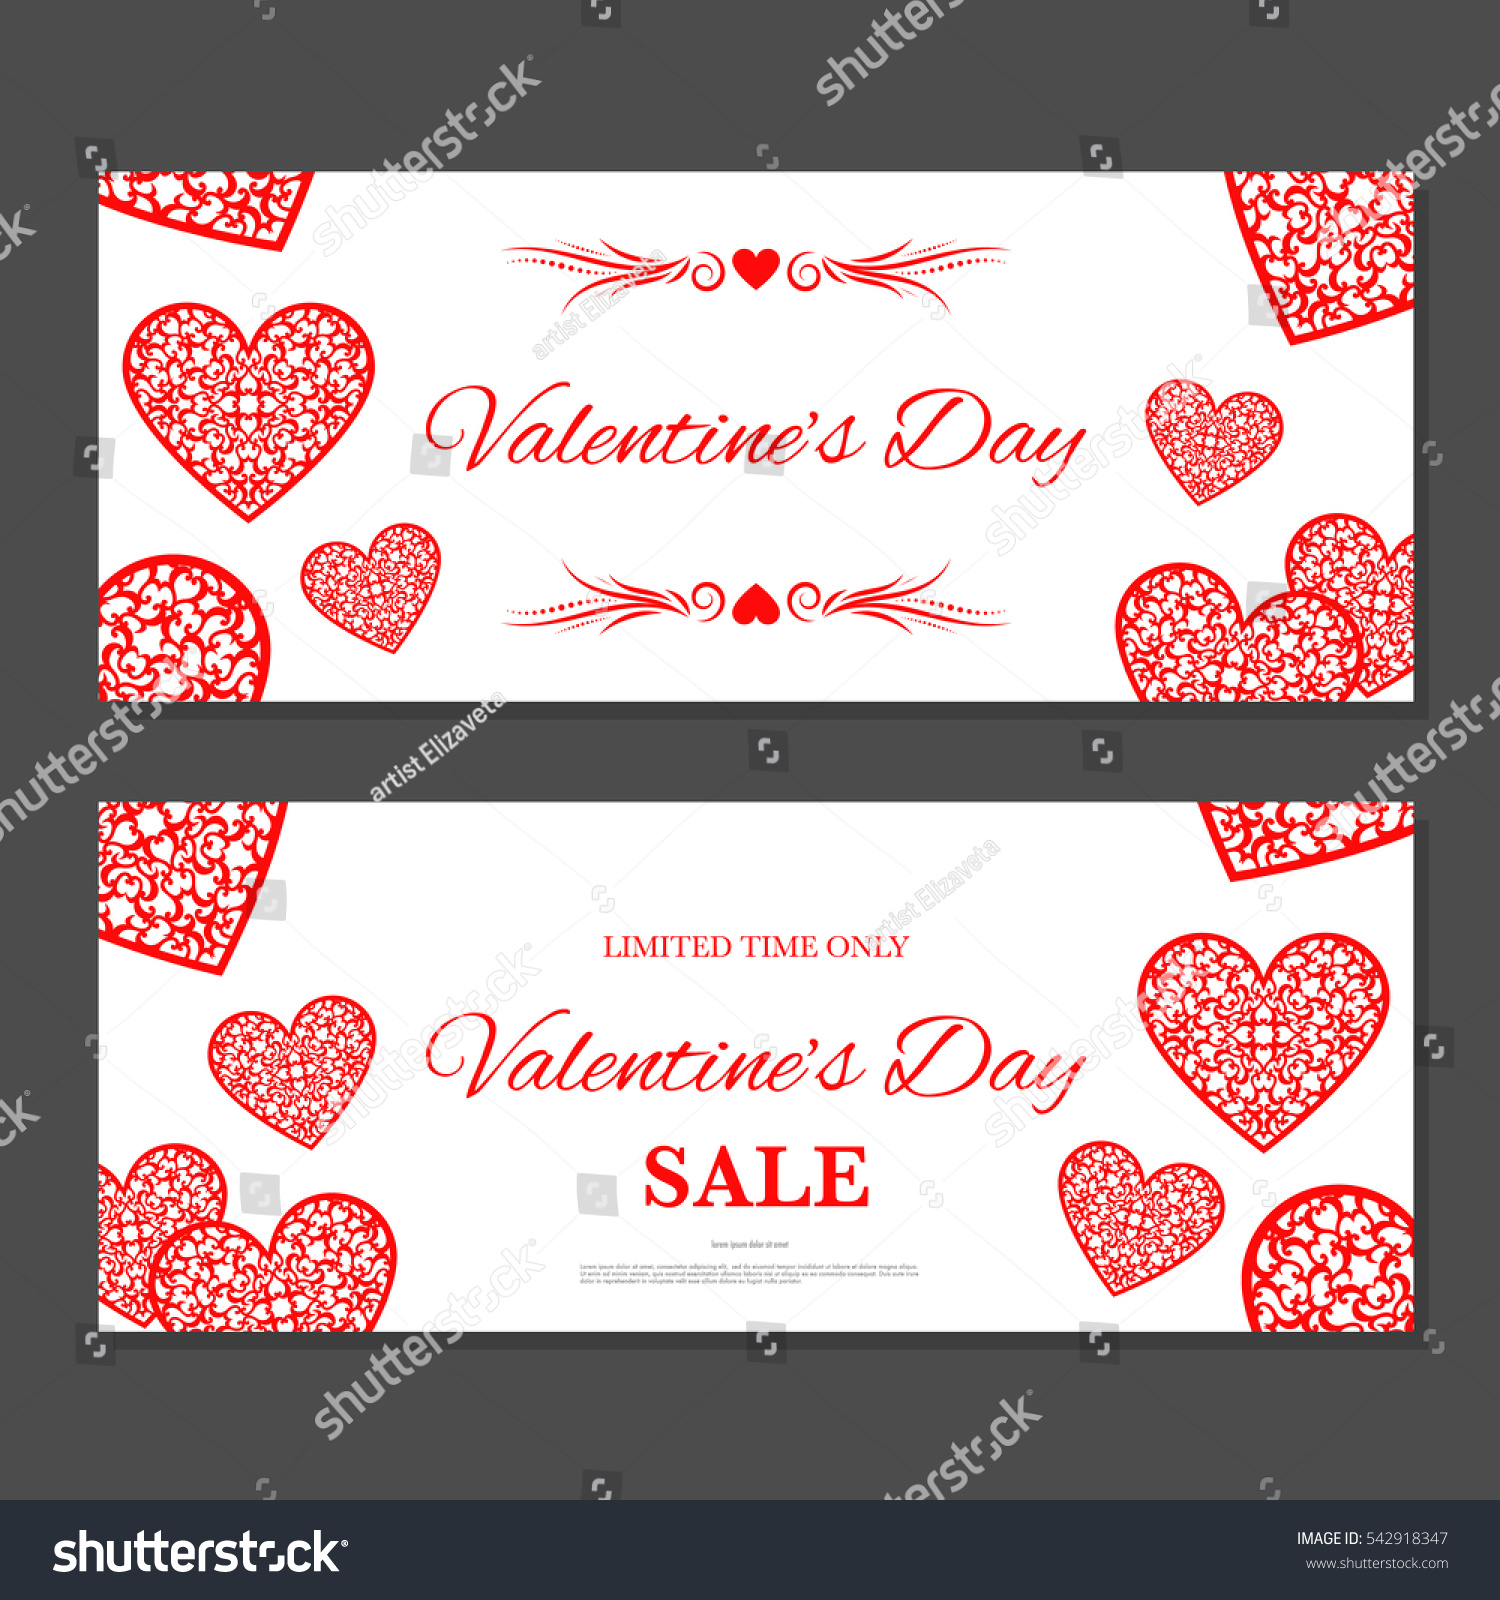 Valentines day gift coupon gift voucher stock vector 542918347 valentines day gift coupon gift voucher template with red hearts two side of discount 1betcityfo Image collections